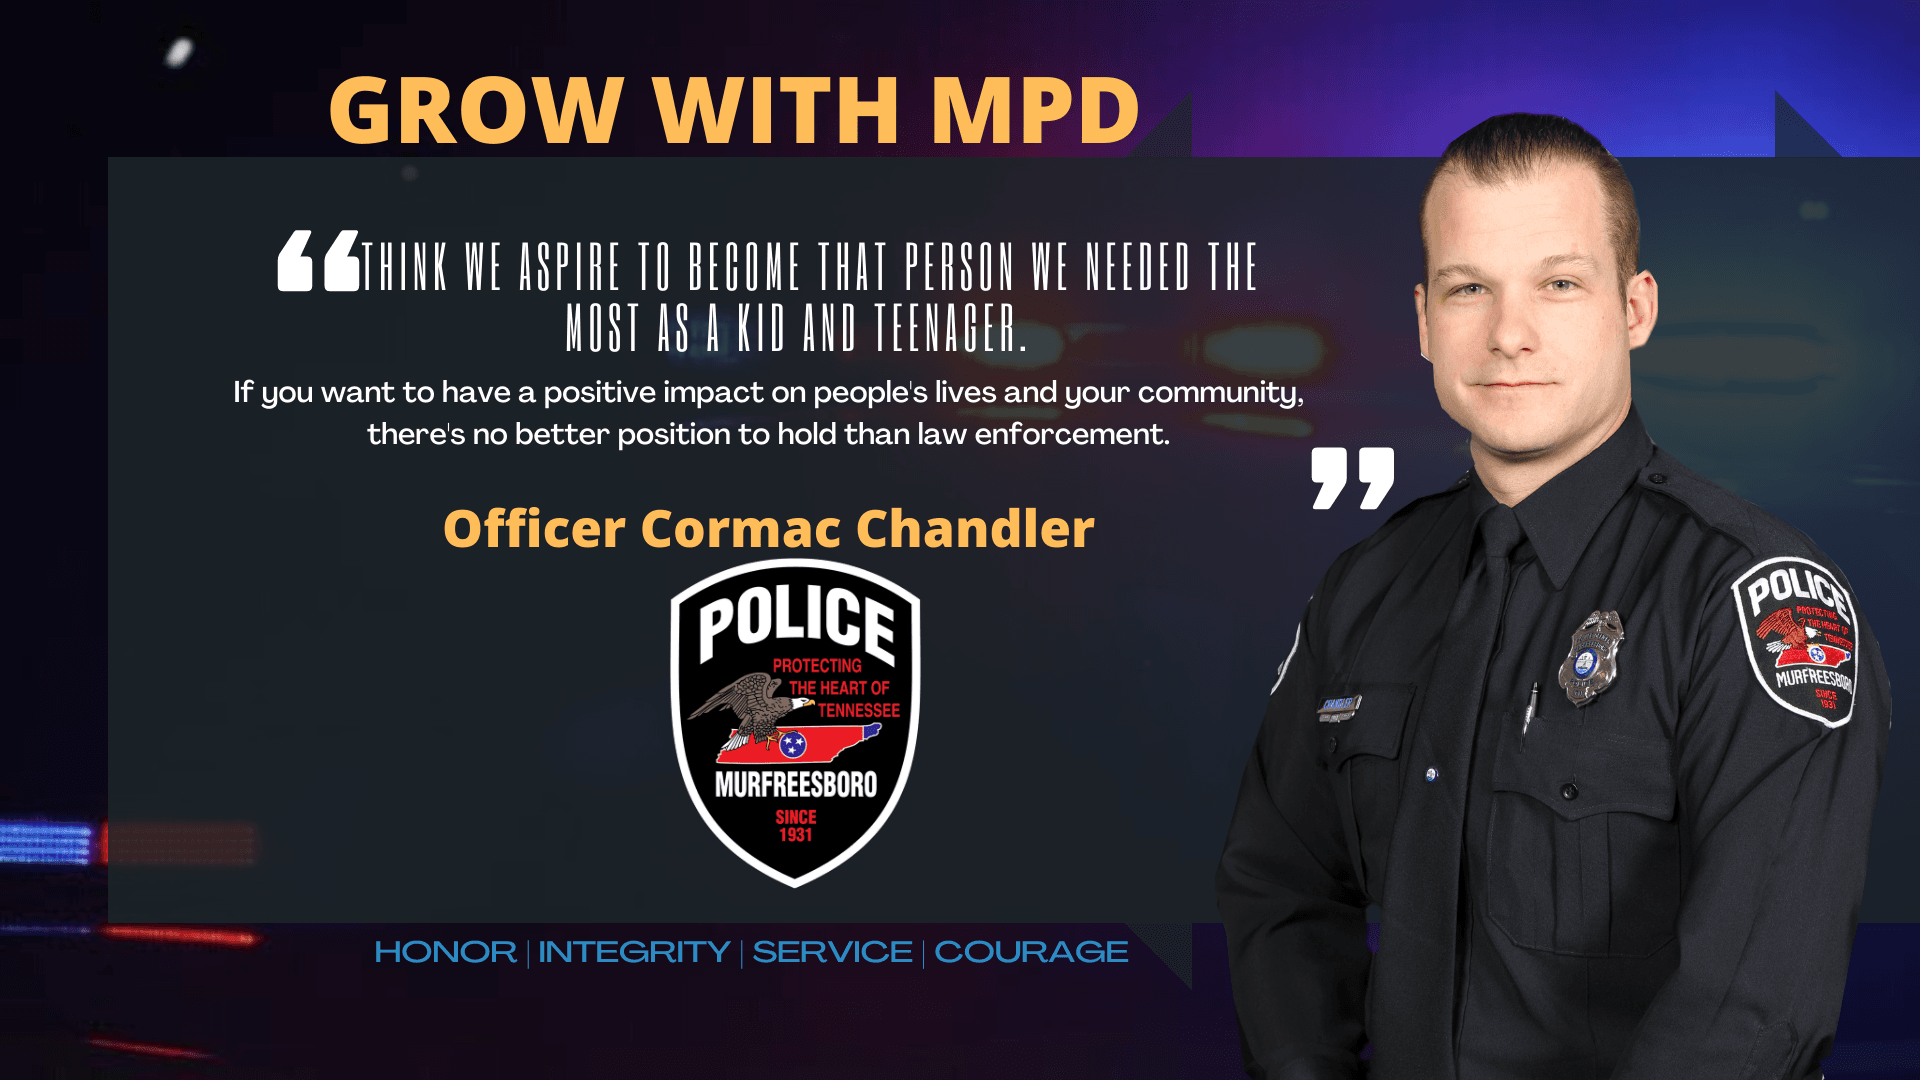 GROW WITH MPD SLIDE CHANDLER (1)